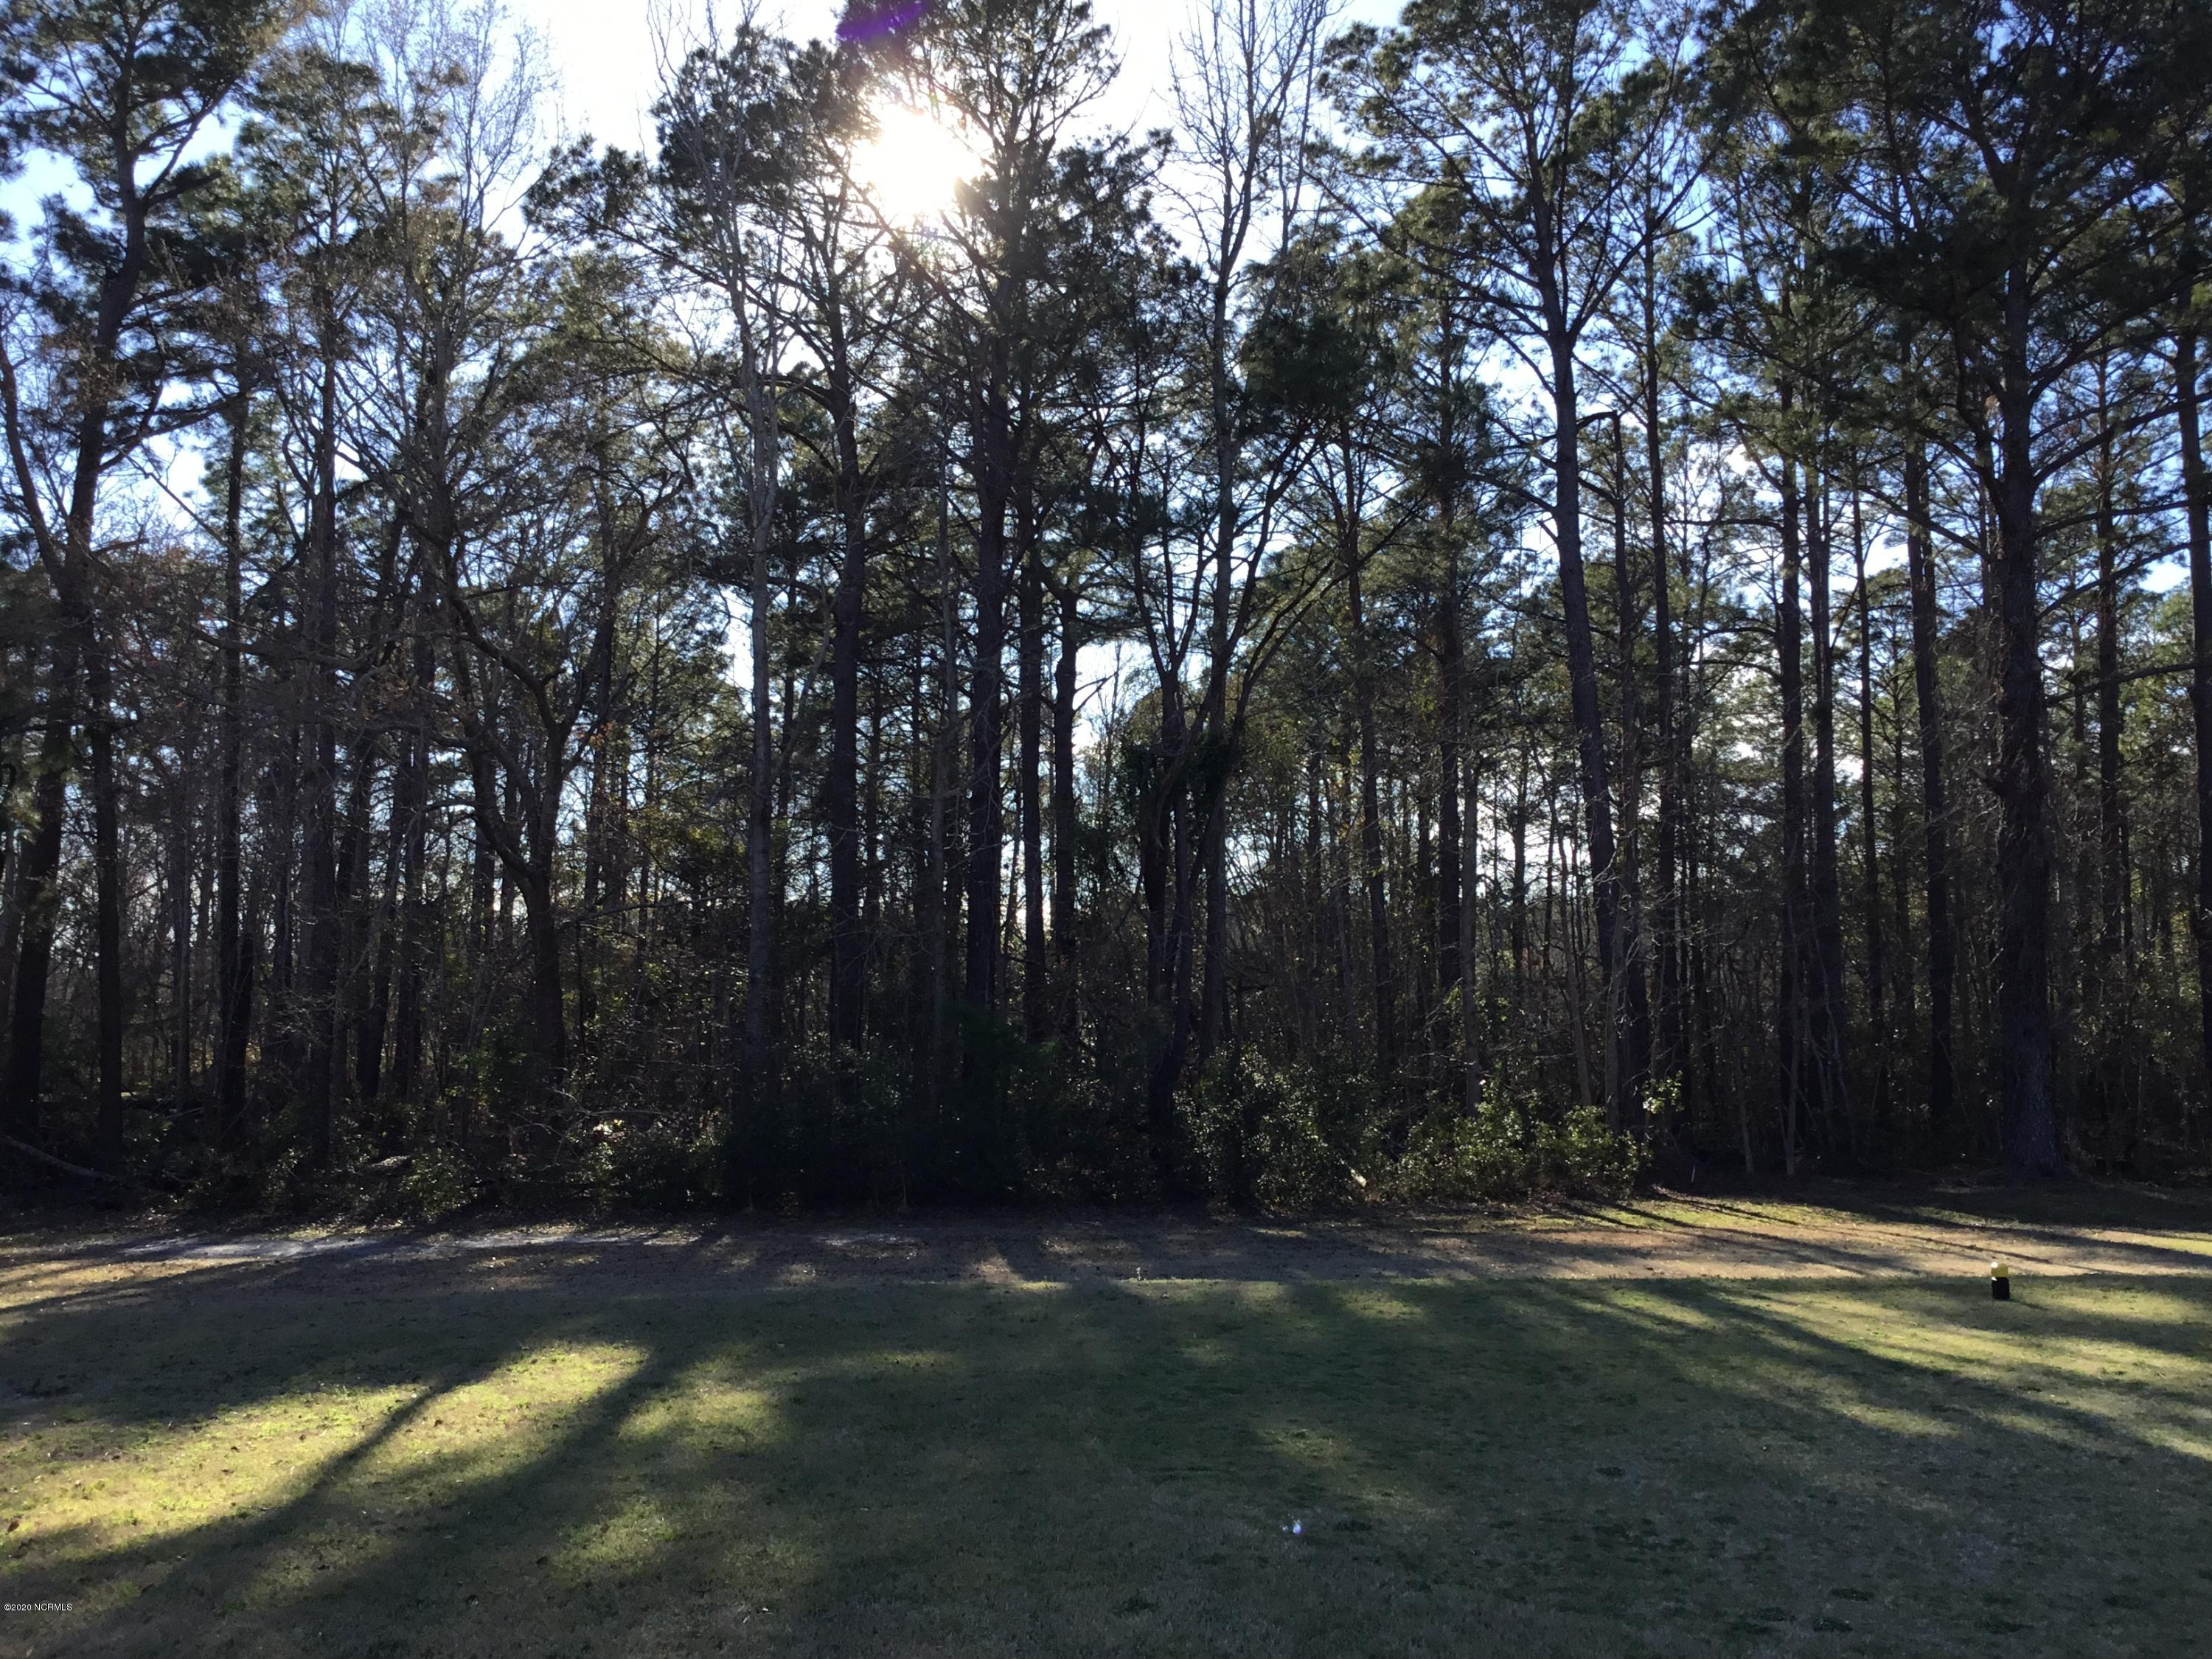 301 Country Club Drive, Minnesott Beach, North Carolina 28510, ,Residential land,For sale,Country Club,100209743